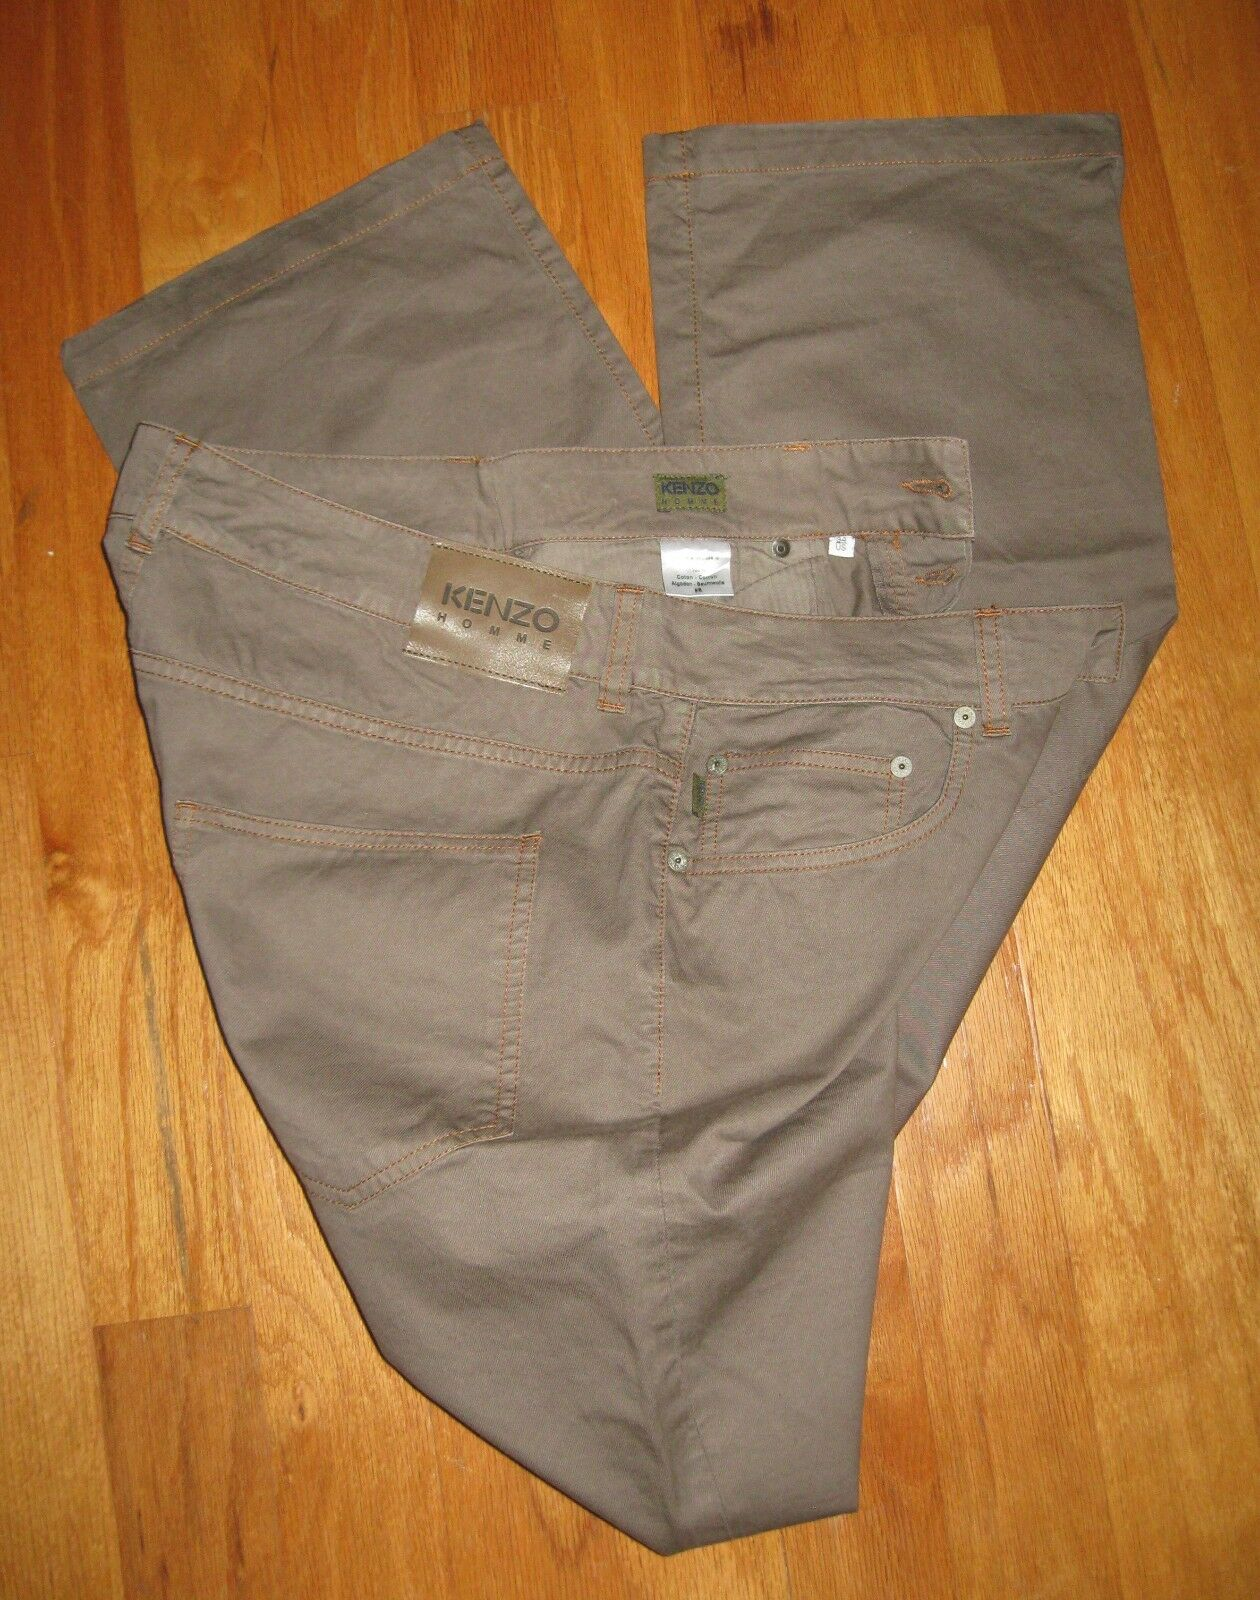 KENZO HOMME MEN'S BROWN 100% COTTON BUTTON FLY STRAIGHT PANT SIZE 34 X 34 NWOT